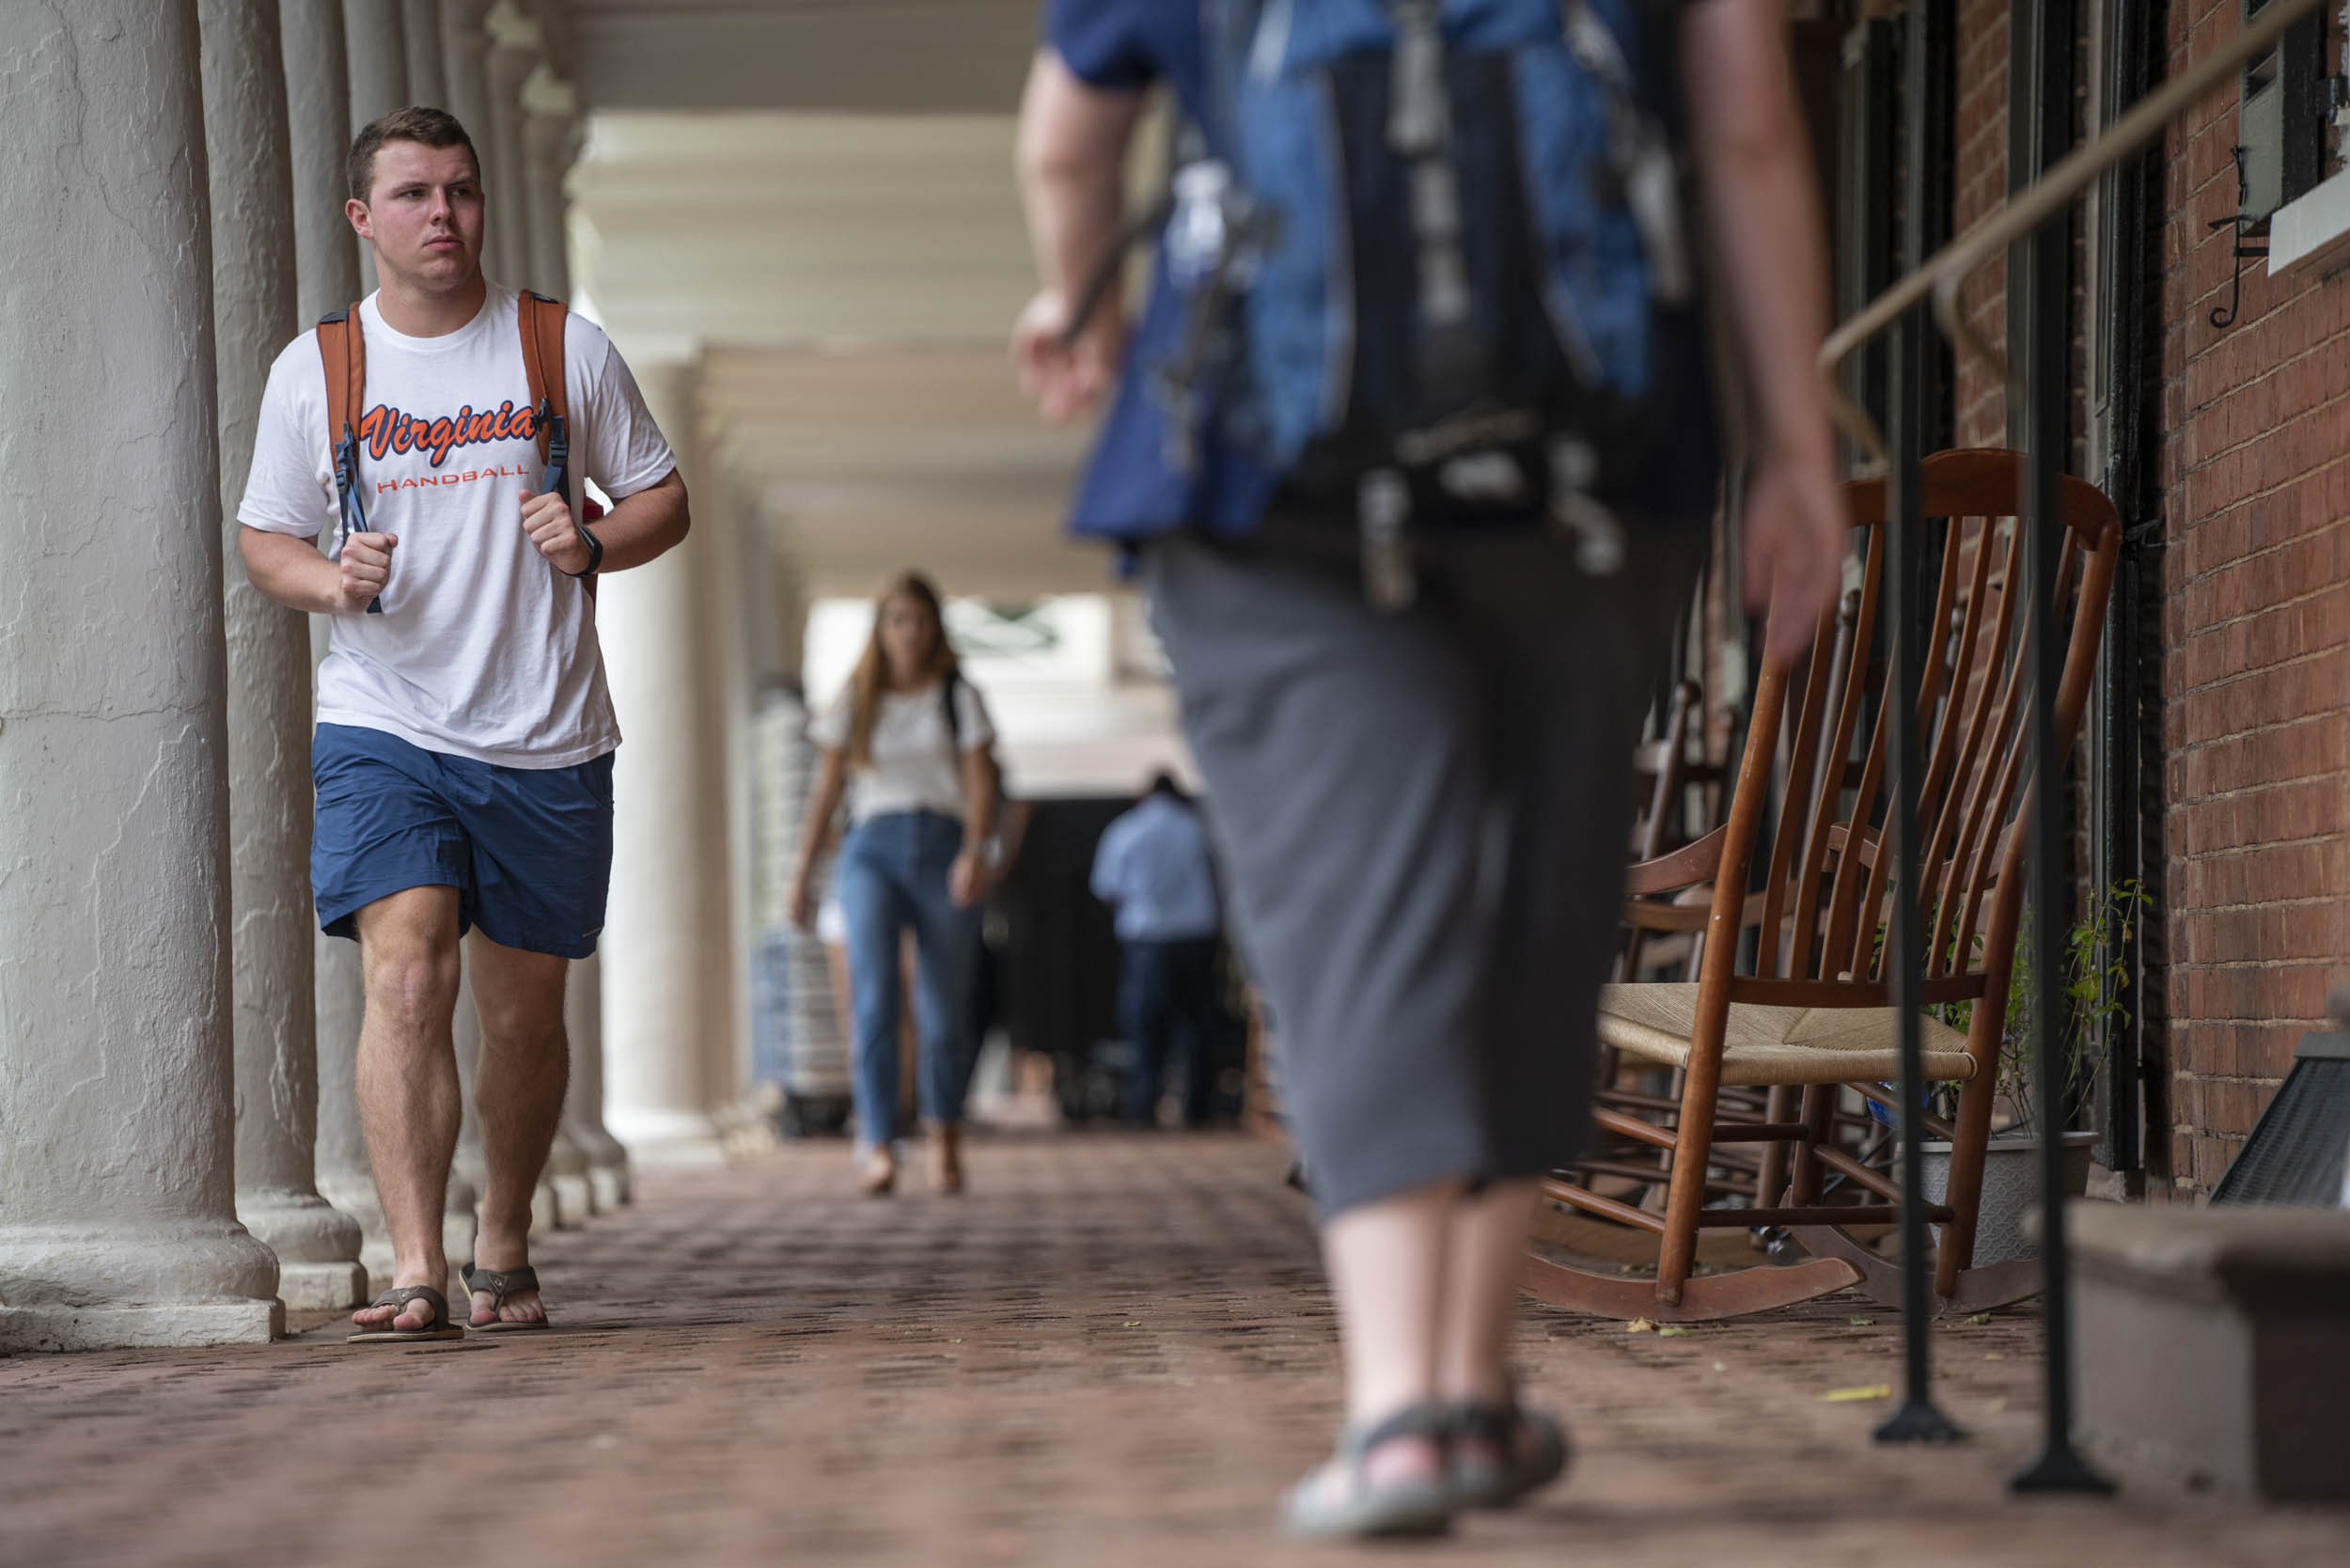 Photos: Happy First Day of Class, UVA!